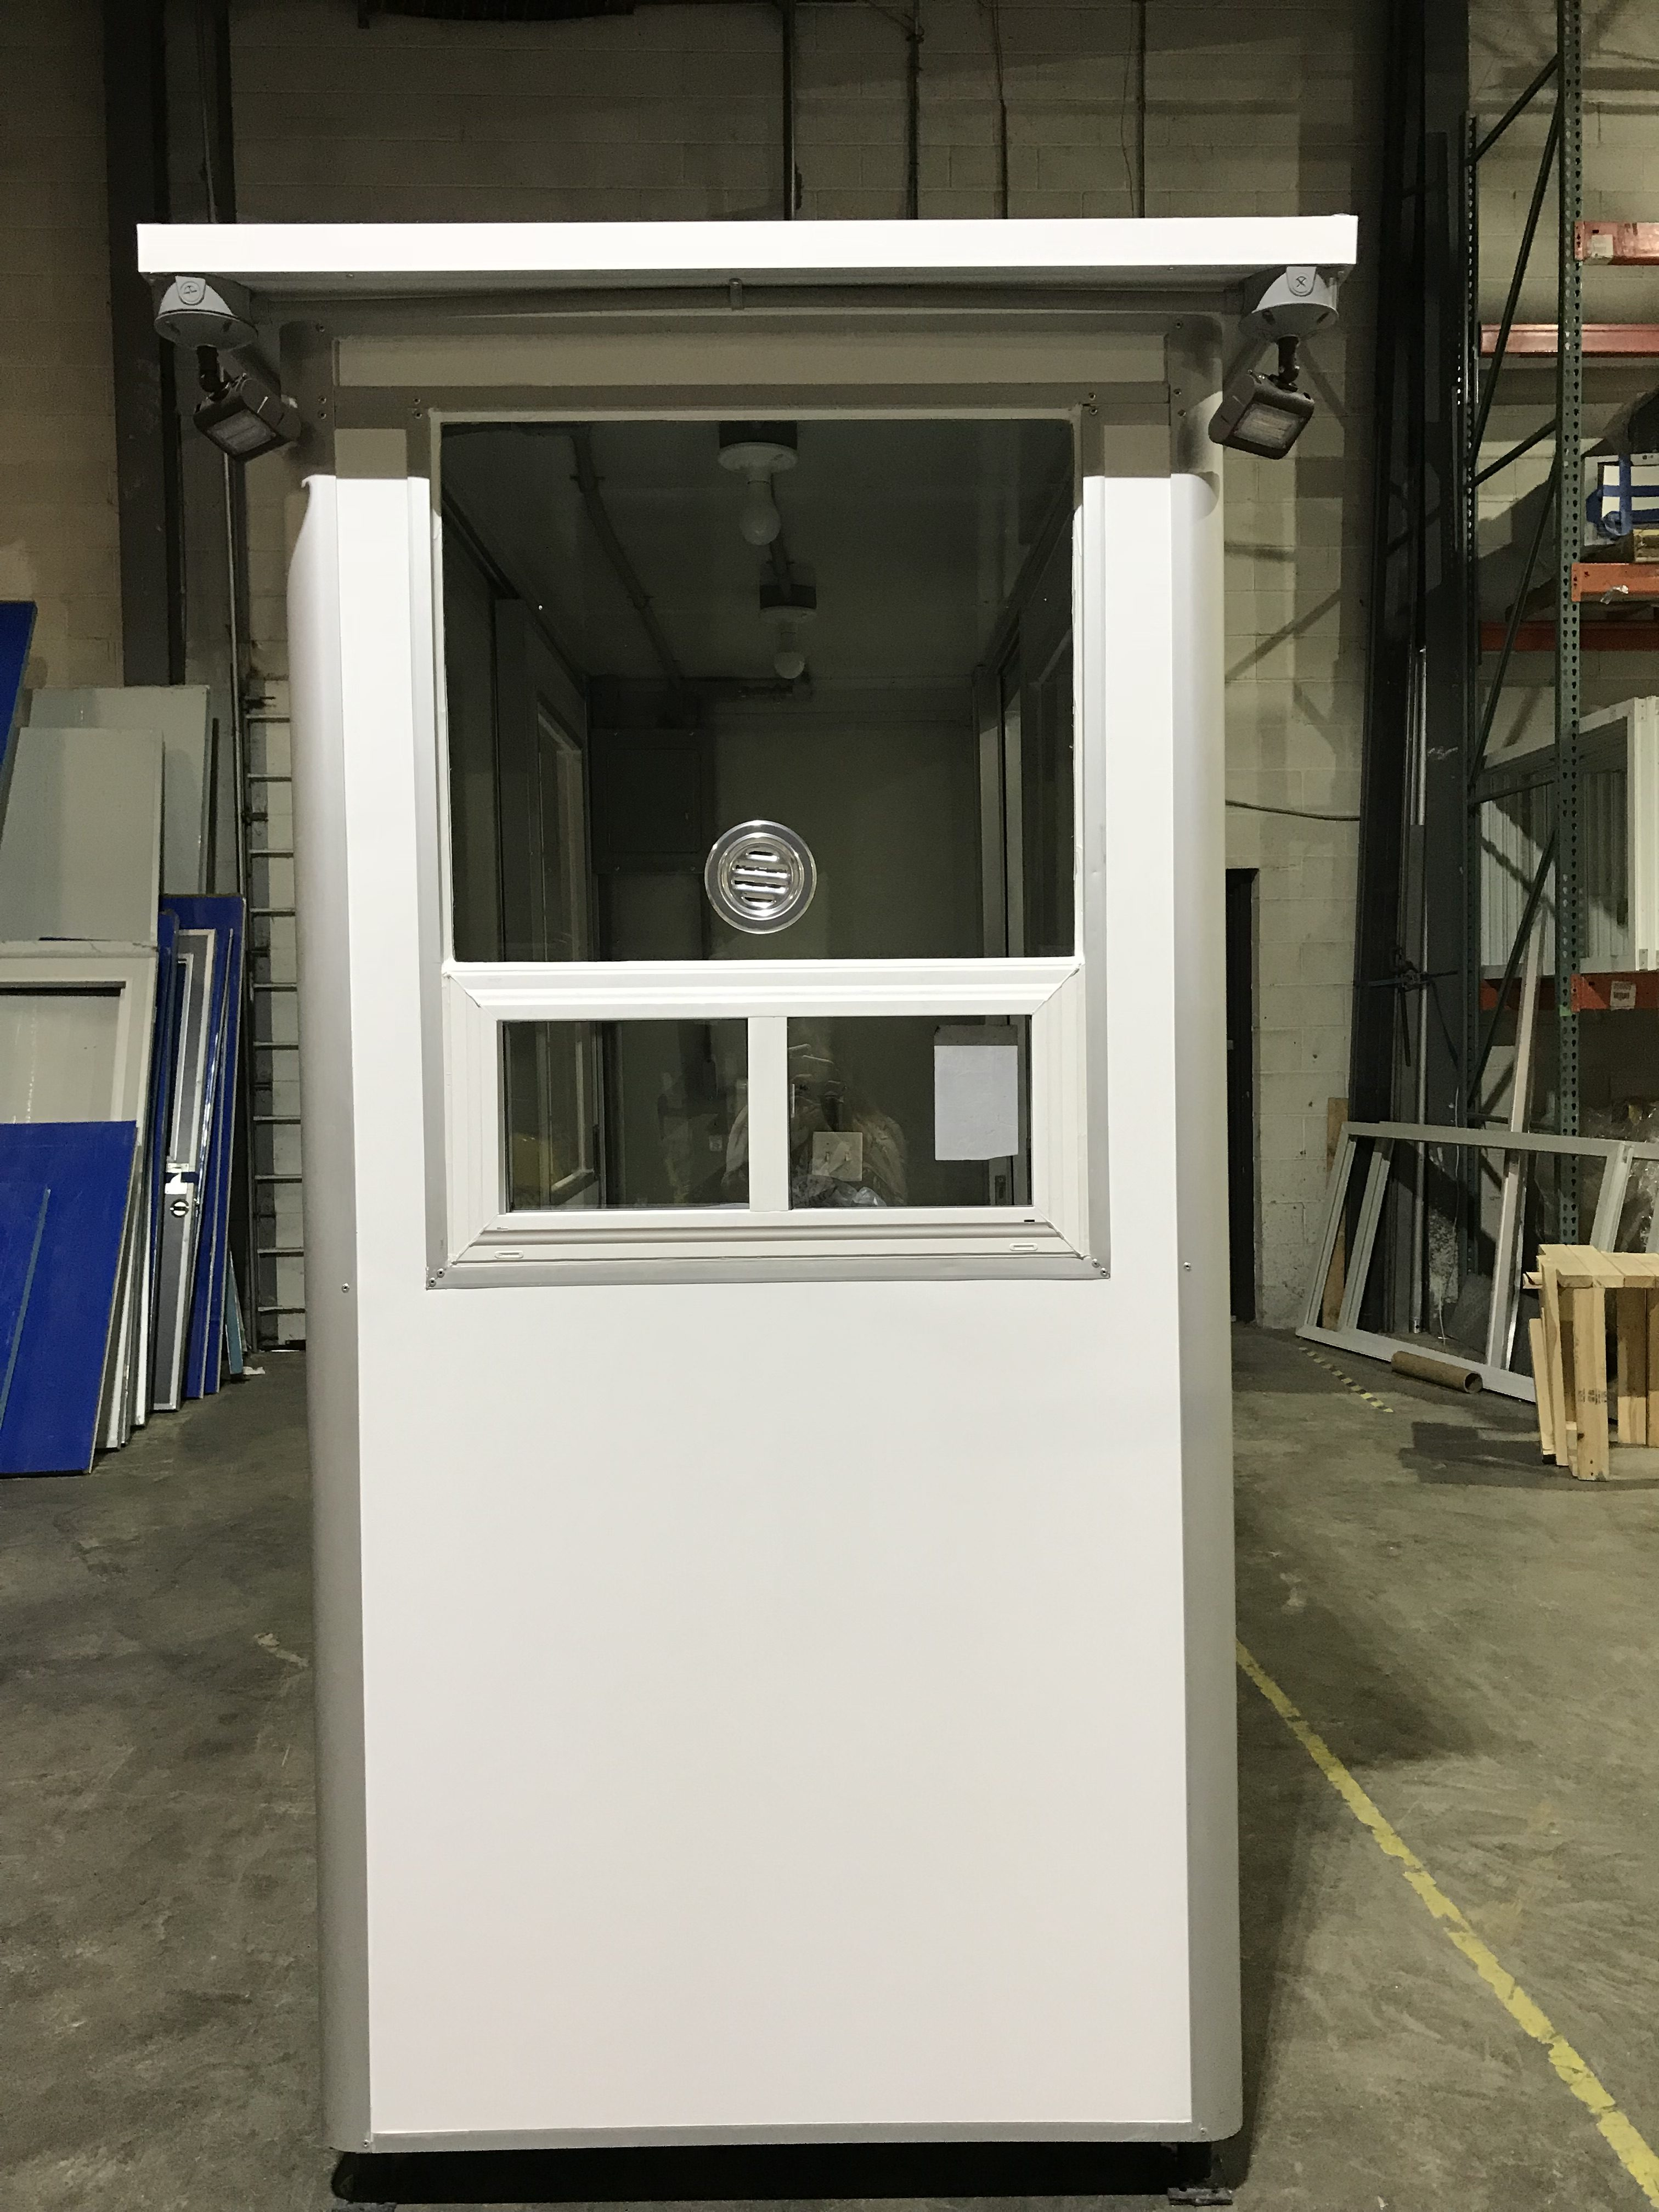 4x6 Cashier Booth with Ticket Transaction Windows, Speaker, Outside Spotlights, Custom Exterior Color, and Anchoring Brackets